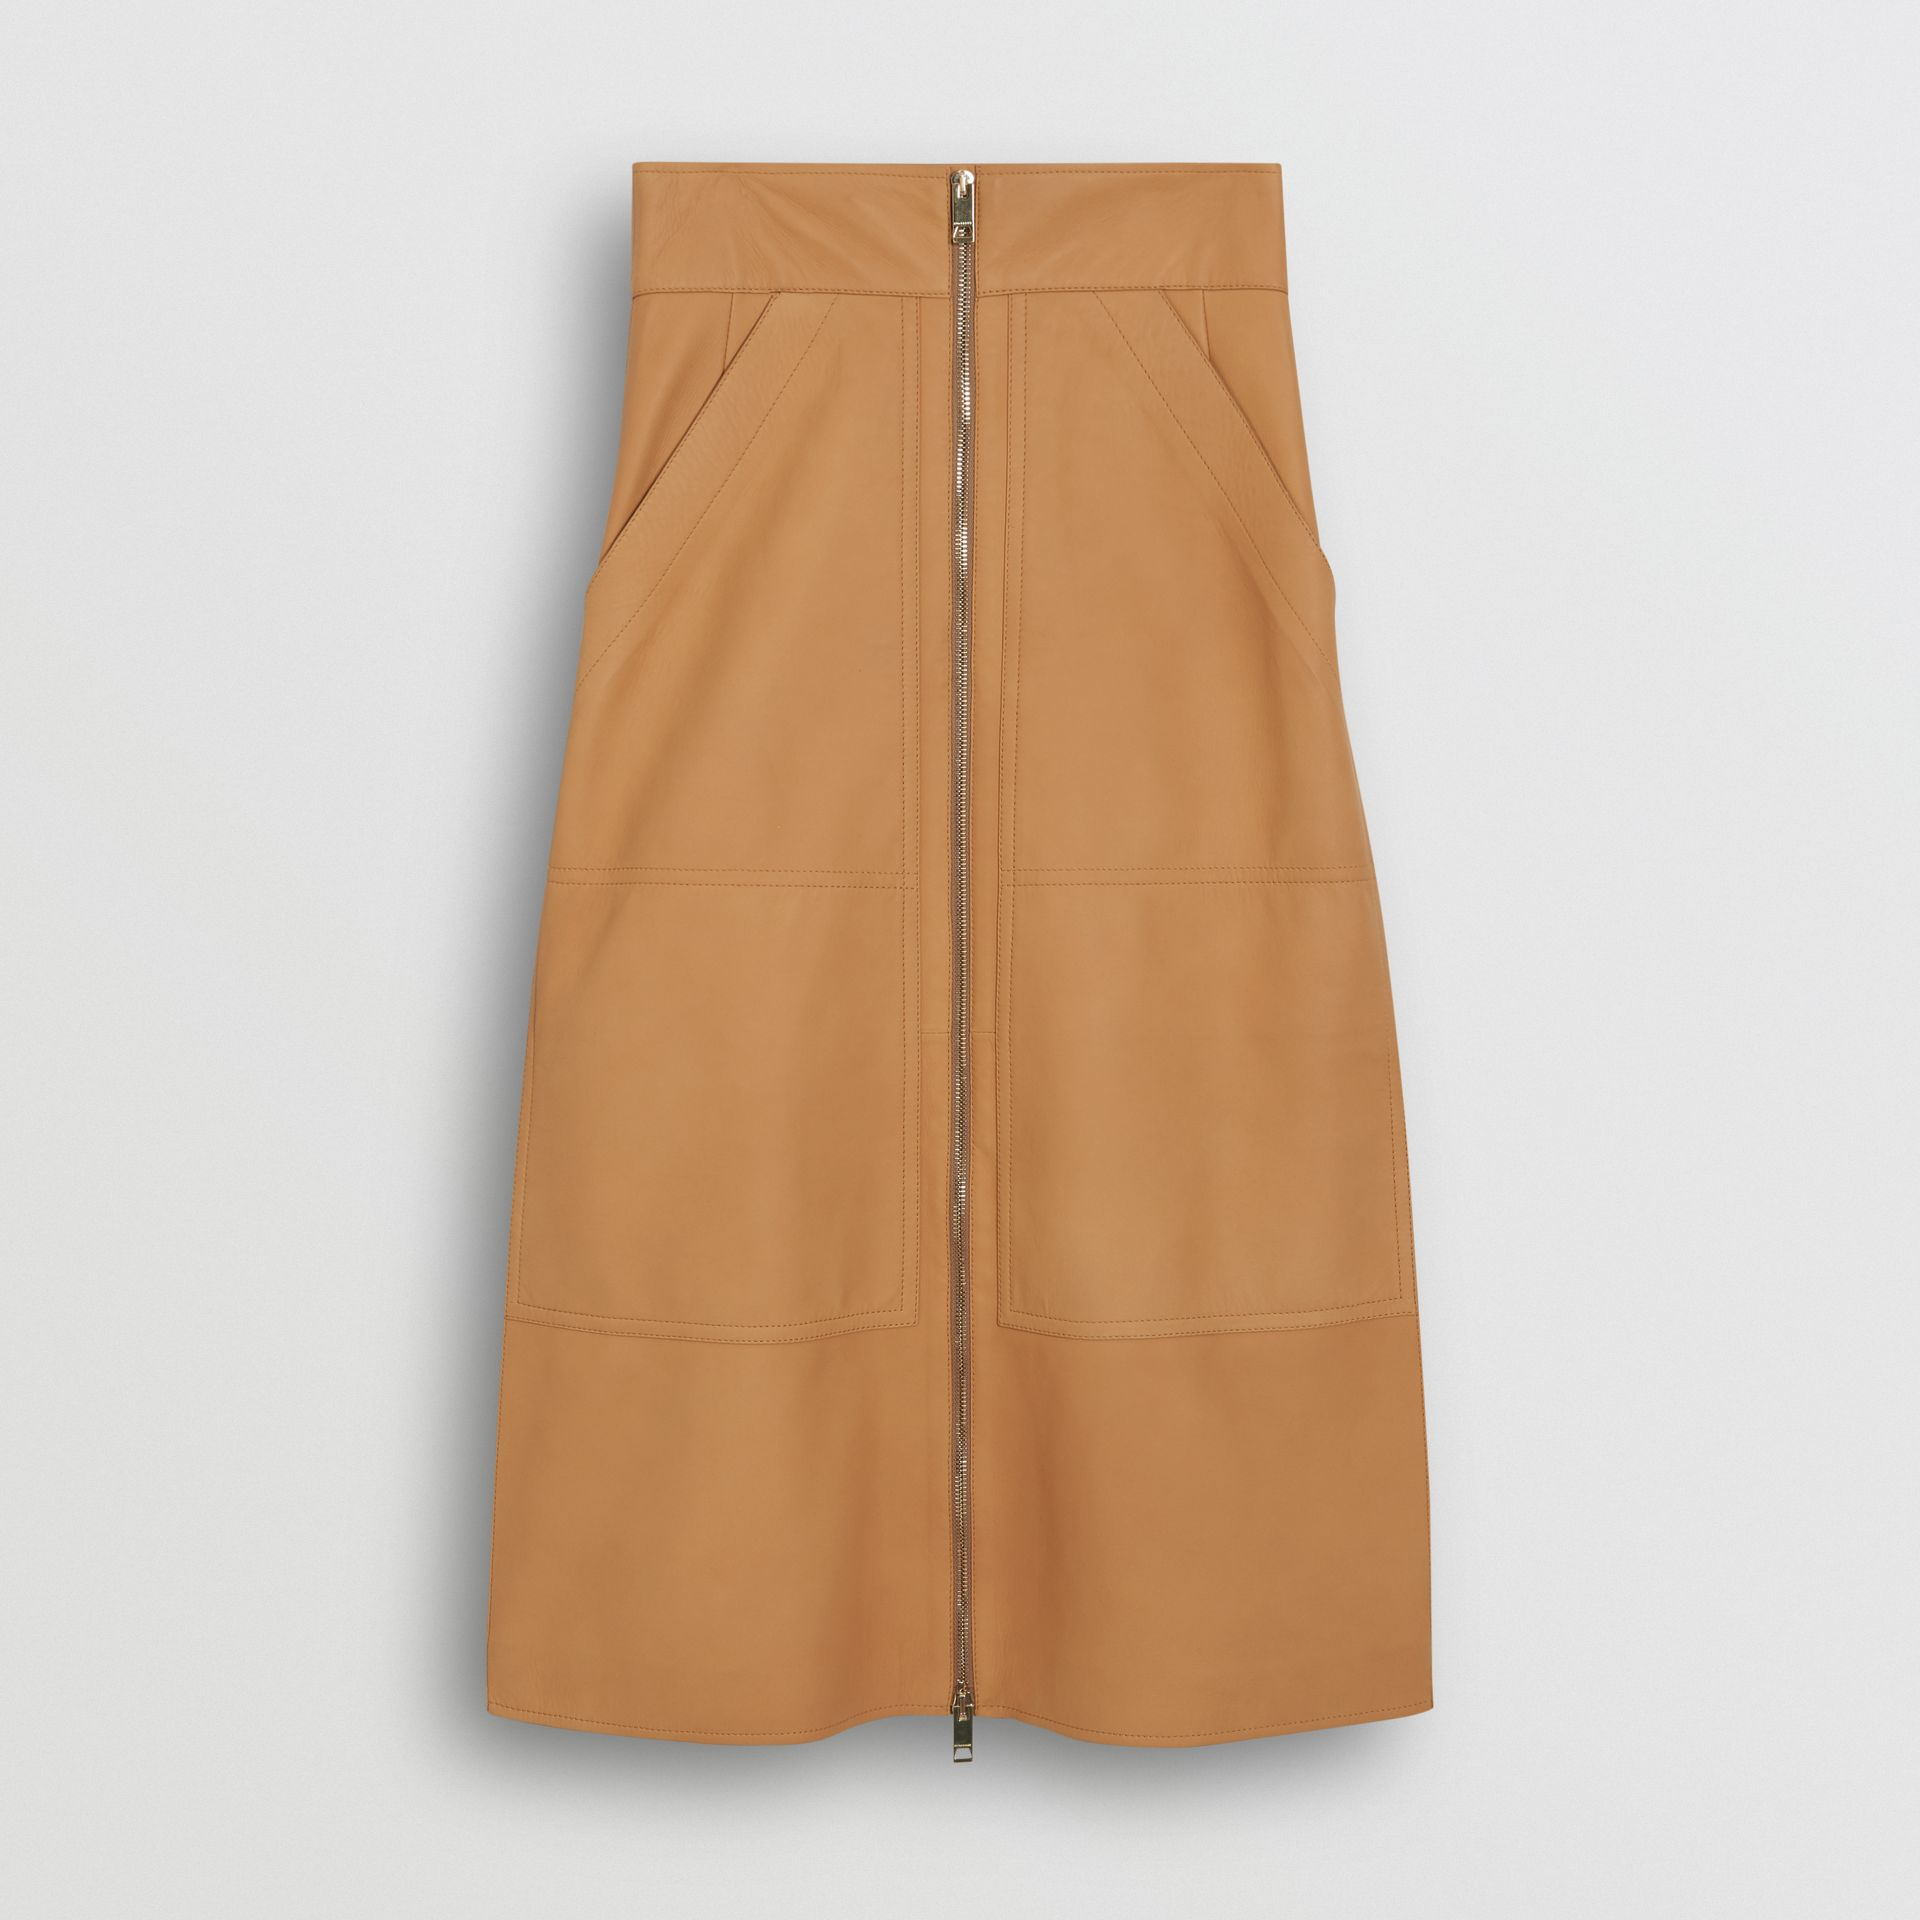 Lambskin High-waisted Skirt in Caramel - Women | Burberry - gallery image 3